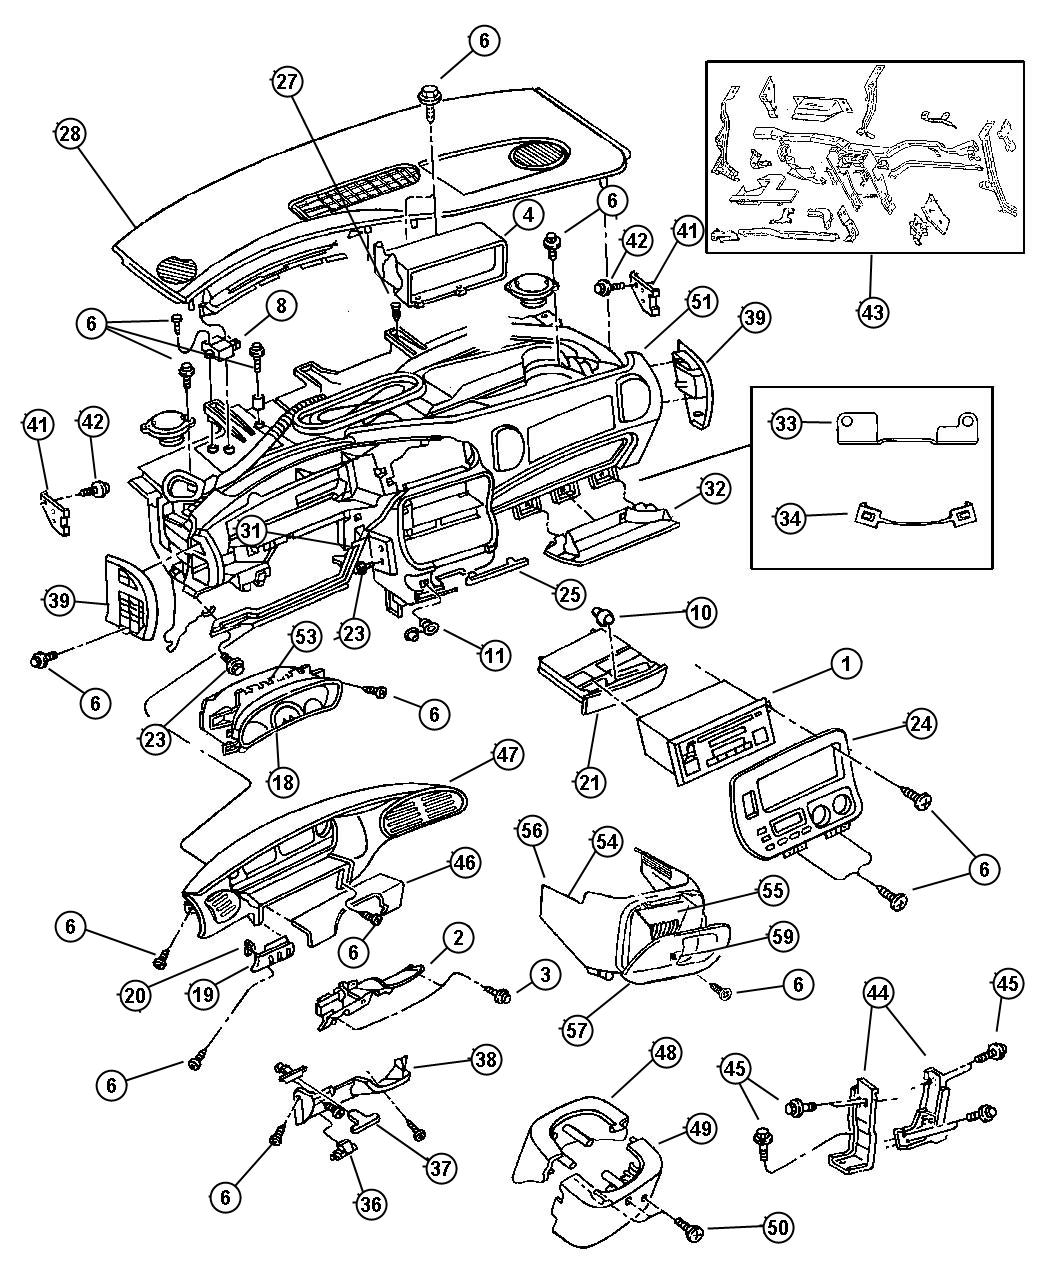 97 Grand Caravan Fuse Box Wiring Library 2002 Dodge Diagram Schematic Plymouth Voyager Engine Another Blog About U2022 2006 Chrysler 300